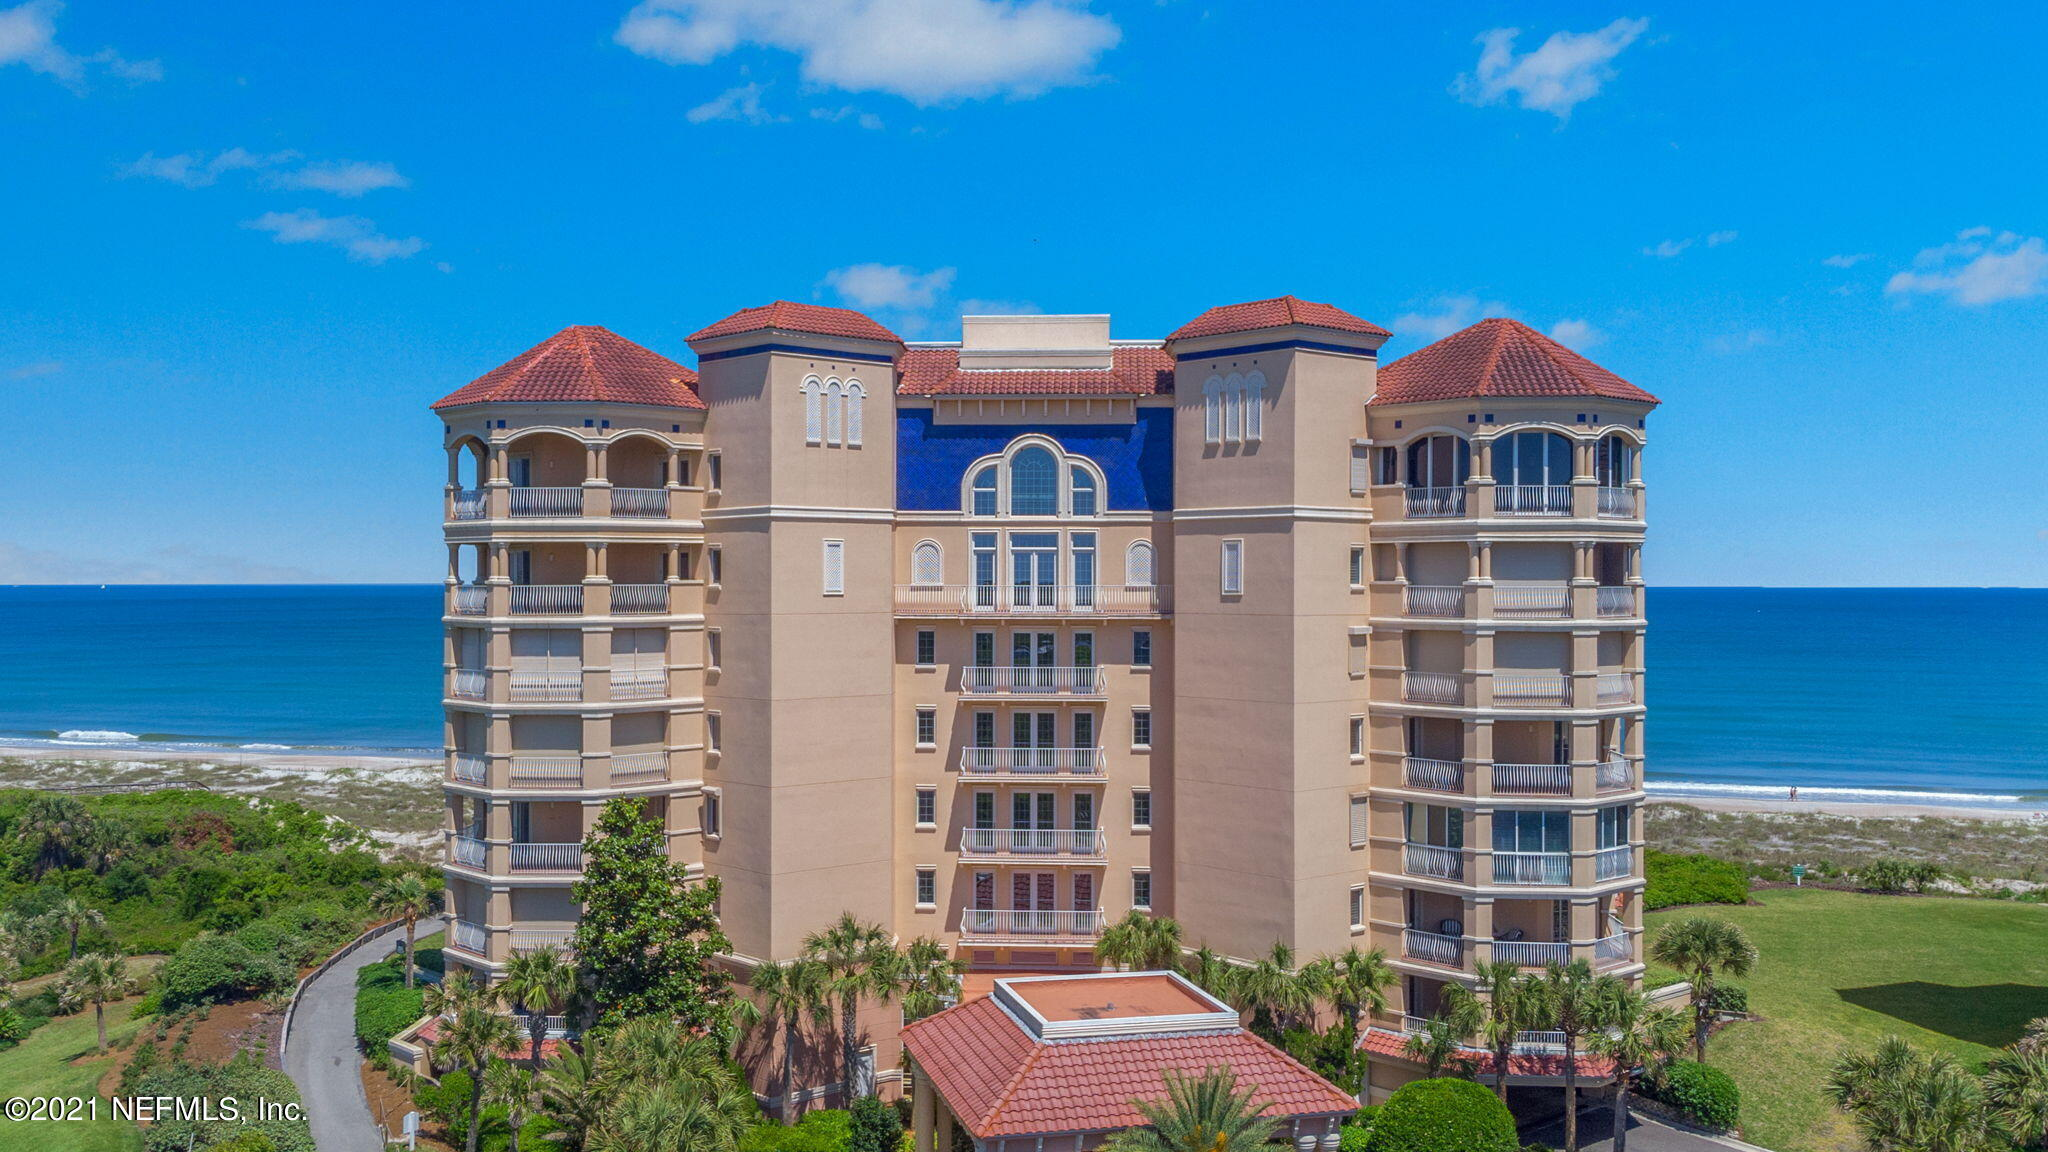 With spacious living areas in this luxury OCEANFRONT condo, you will enjoy a breathtaking view! This 7th floor PENTHOUSE villa features a 3-bed/3-bath floor plan, furnished (with exclusions), with balcony access from almost every room! The condo includes a breakfast nook, a formal dining room, and a living room which has a fireplace with built in entertainment center and balcony access. A comfortable kitchen has full view of the ocean and also features Corian(r) countertops, custom kitchen cabinets, solid surface GE range, utility room and pantry. The master bedroom has a beautiful ocean view and master bath also has an ocean view with walk-in shower, separate garden tub and ceramic tile floors. Other features for this villa include 11 foot ceilings, garage parking and private storage  area.